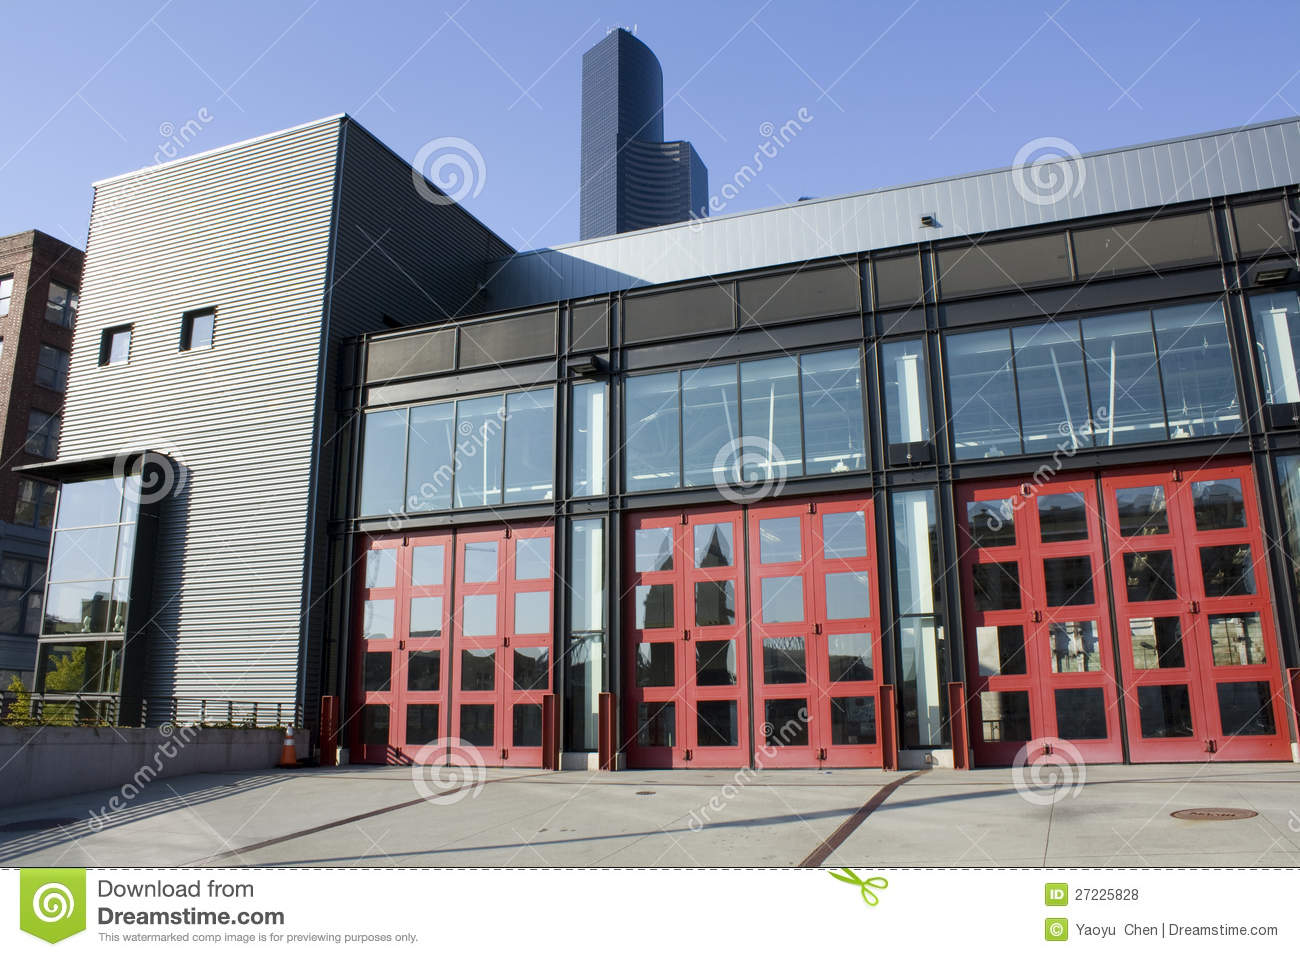 modern fire station royalty free stock photos - image: 27225828